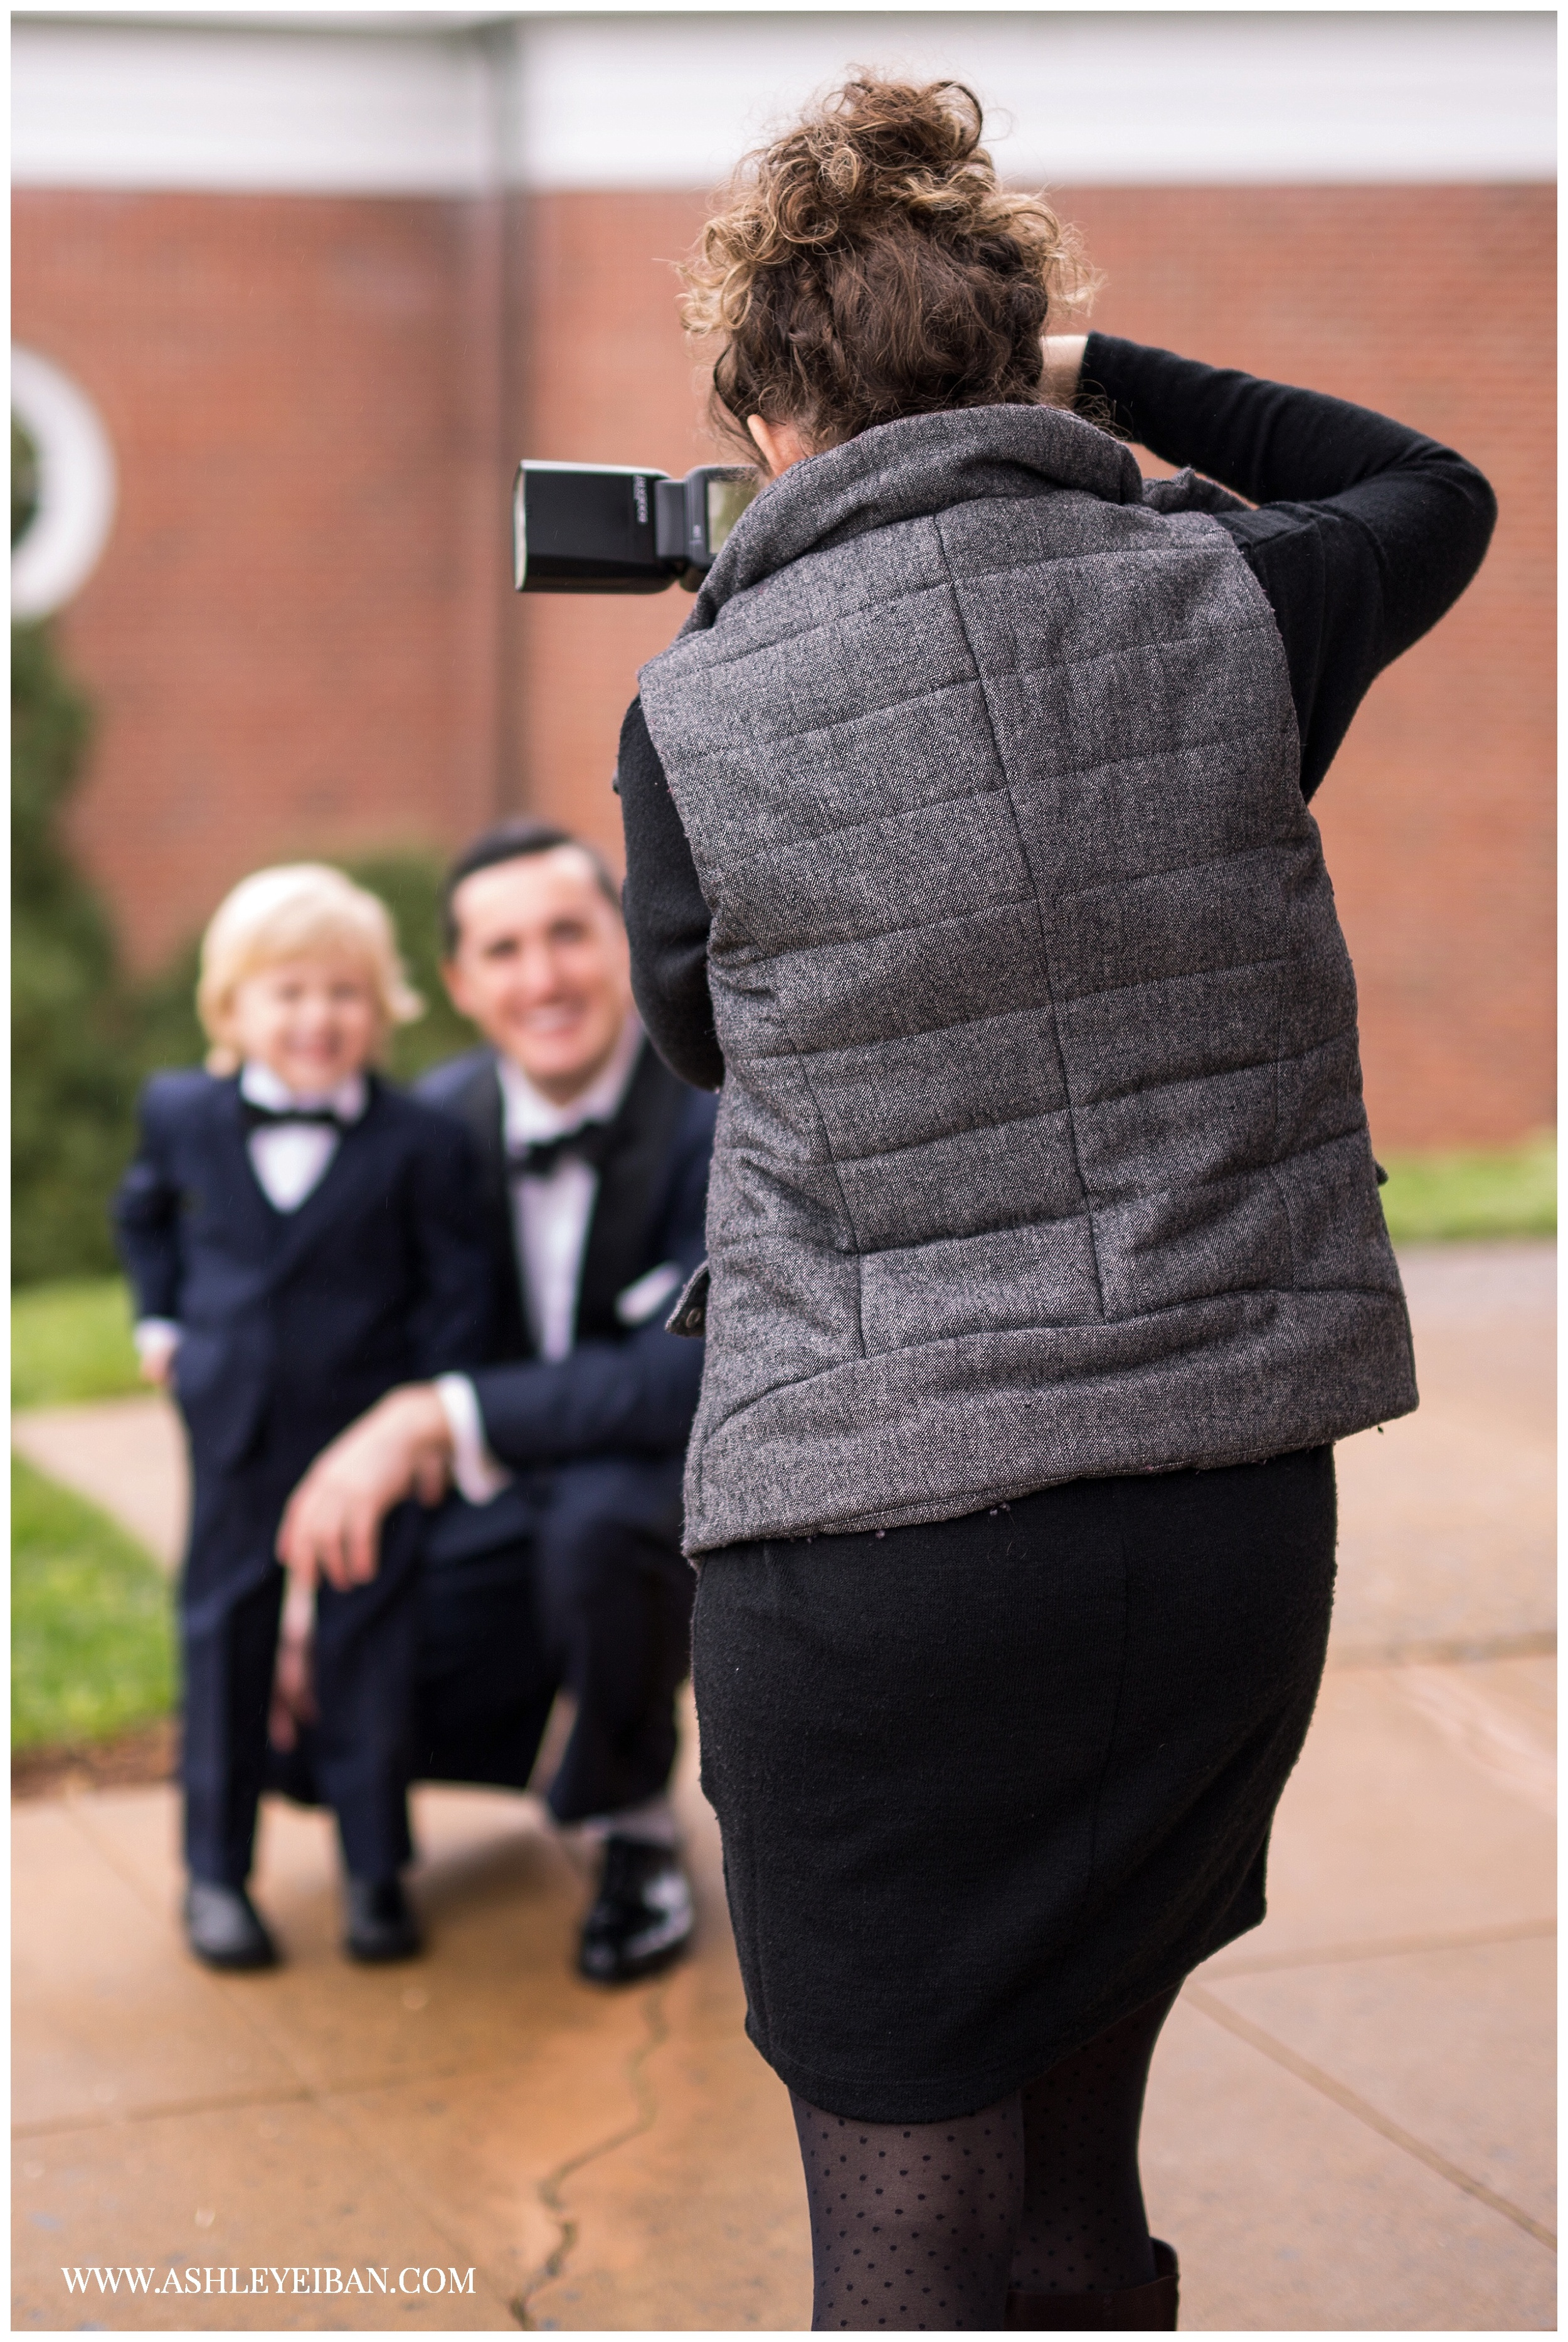 What to pack in your camera bag || Charlottesville Wedding Photographer || Wedding Photographer in Lynchburg, VA and Central Virginia || Ashley Eiban Photography || www.ashleyeiban.com